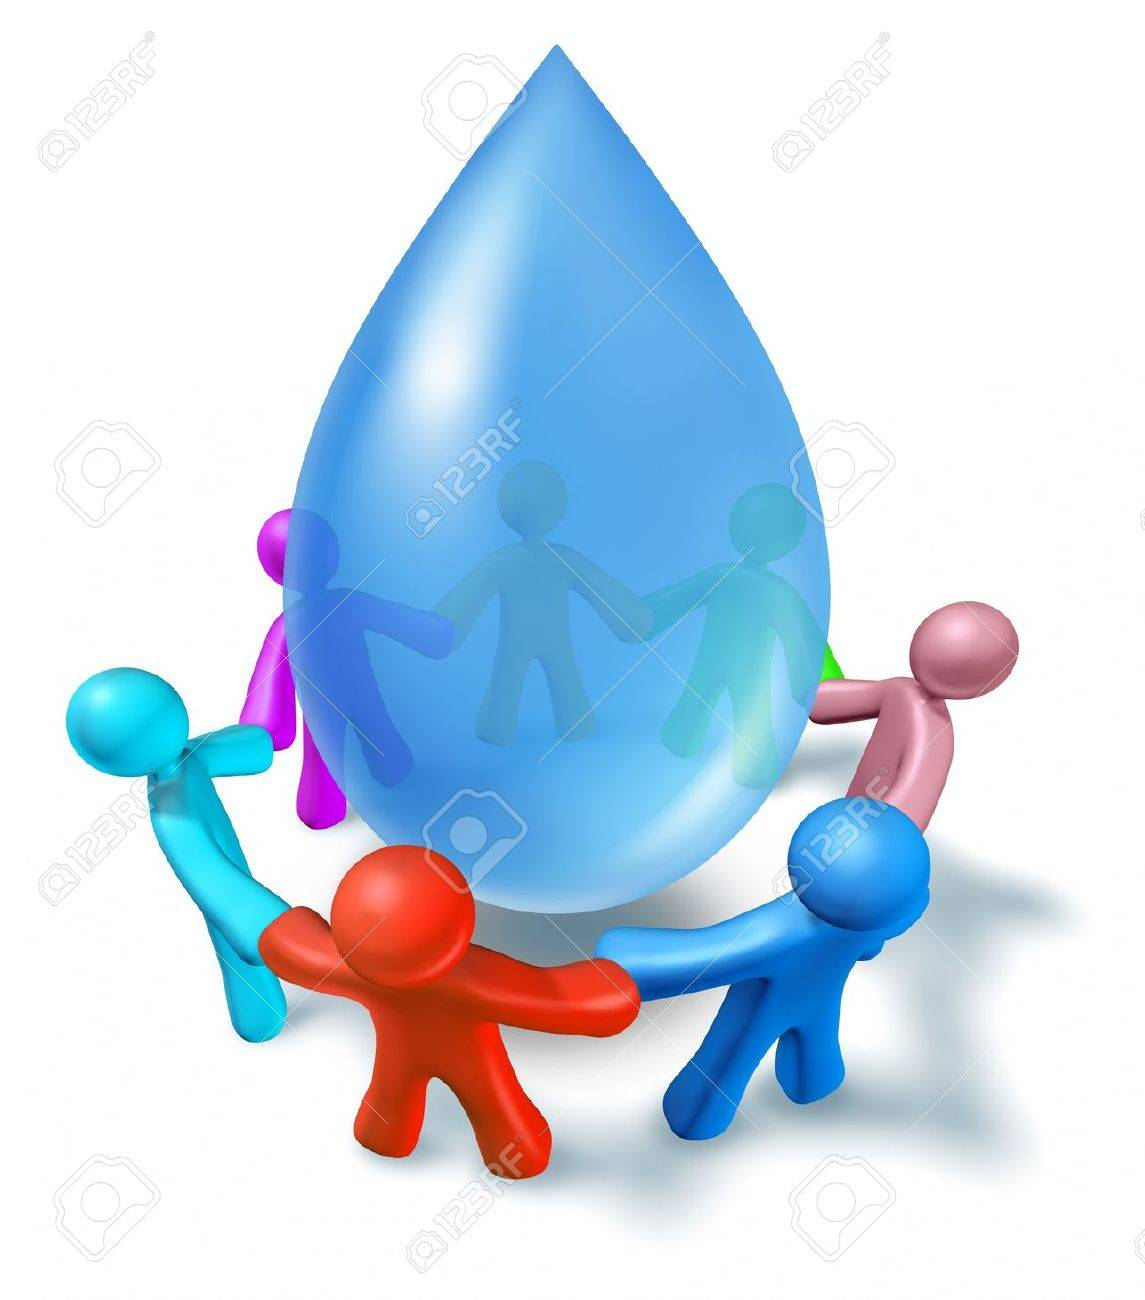 World water health network of world cooperation represented by a blue drop of h2o and human characters of different colors connected in a network holding hands showing people working together for clean drinking water. Stock Photo - 10743647